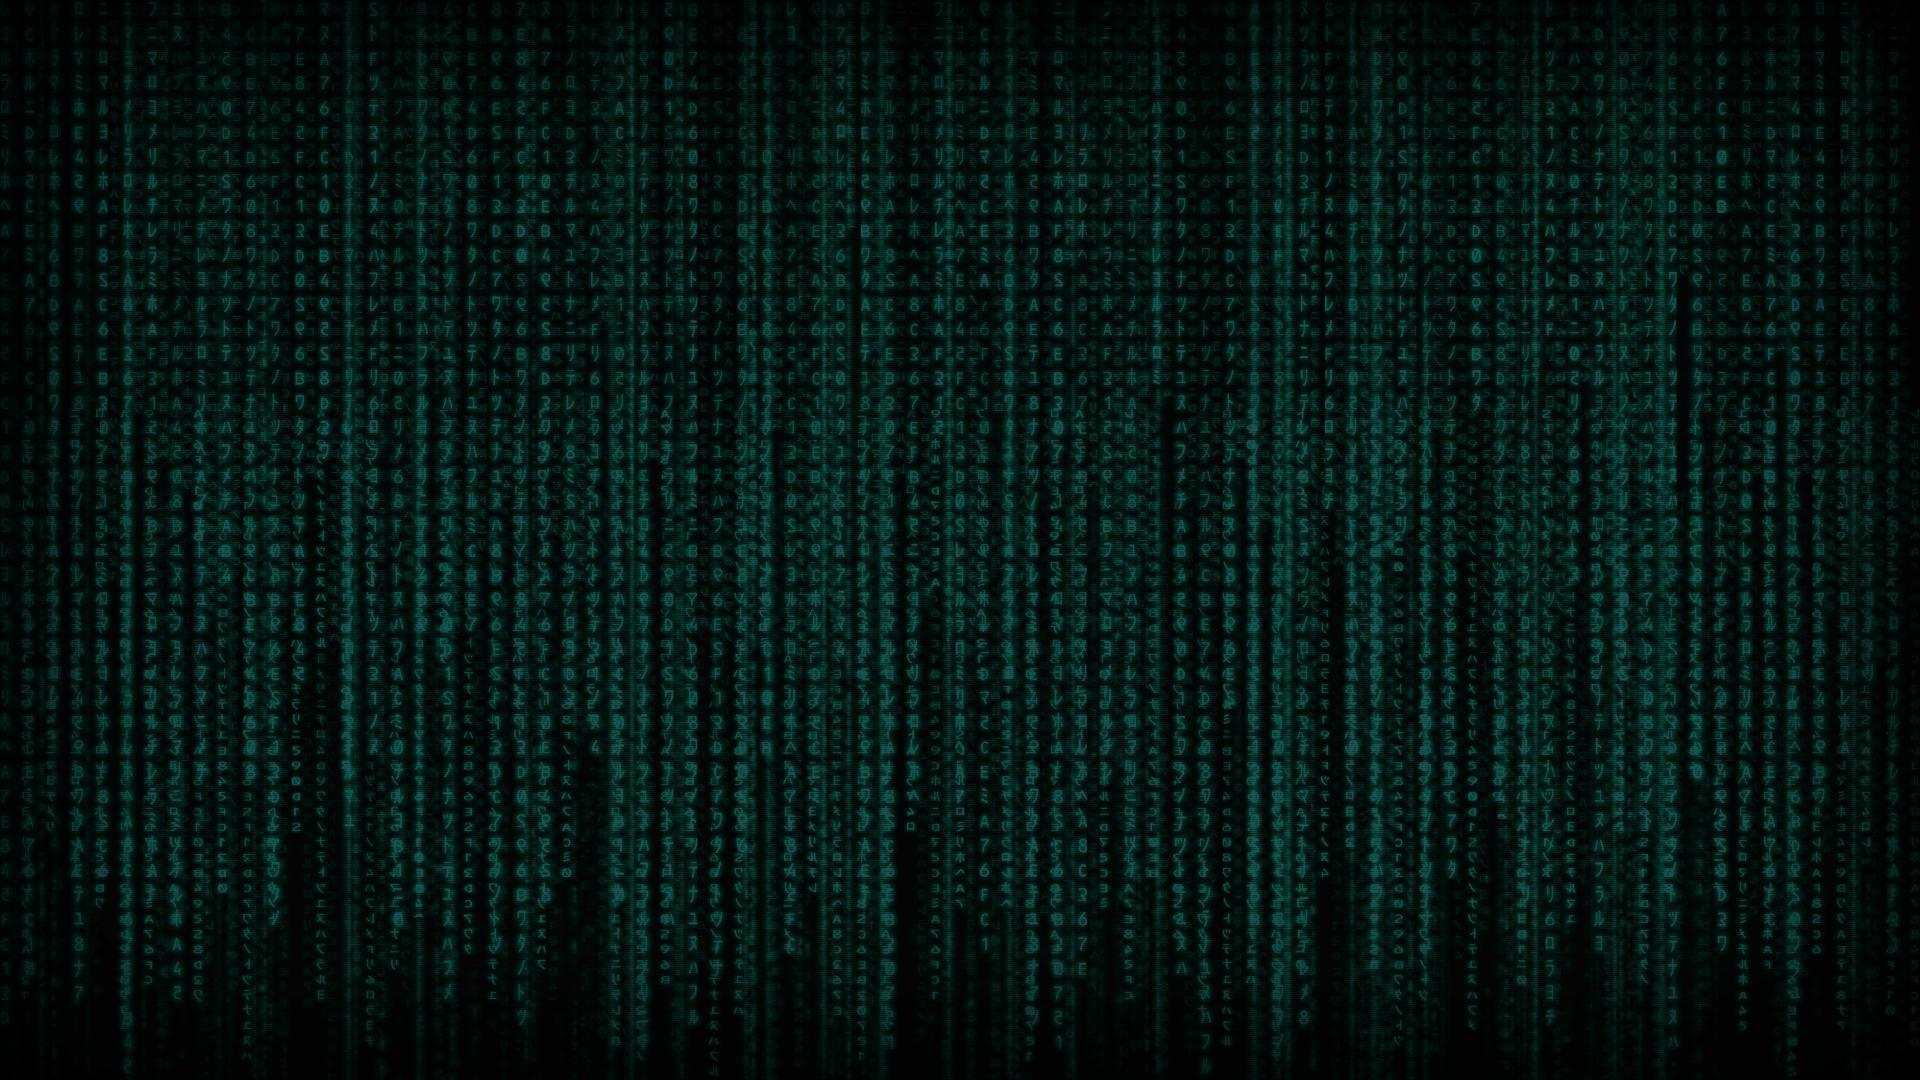 Matrix Wallpapers HD - Wallpaper Cave Wallpaper